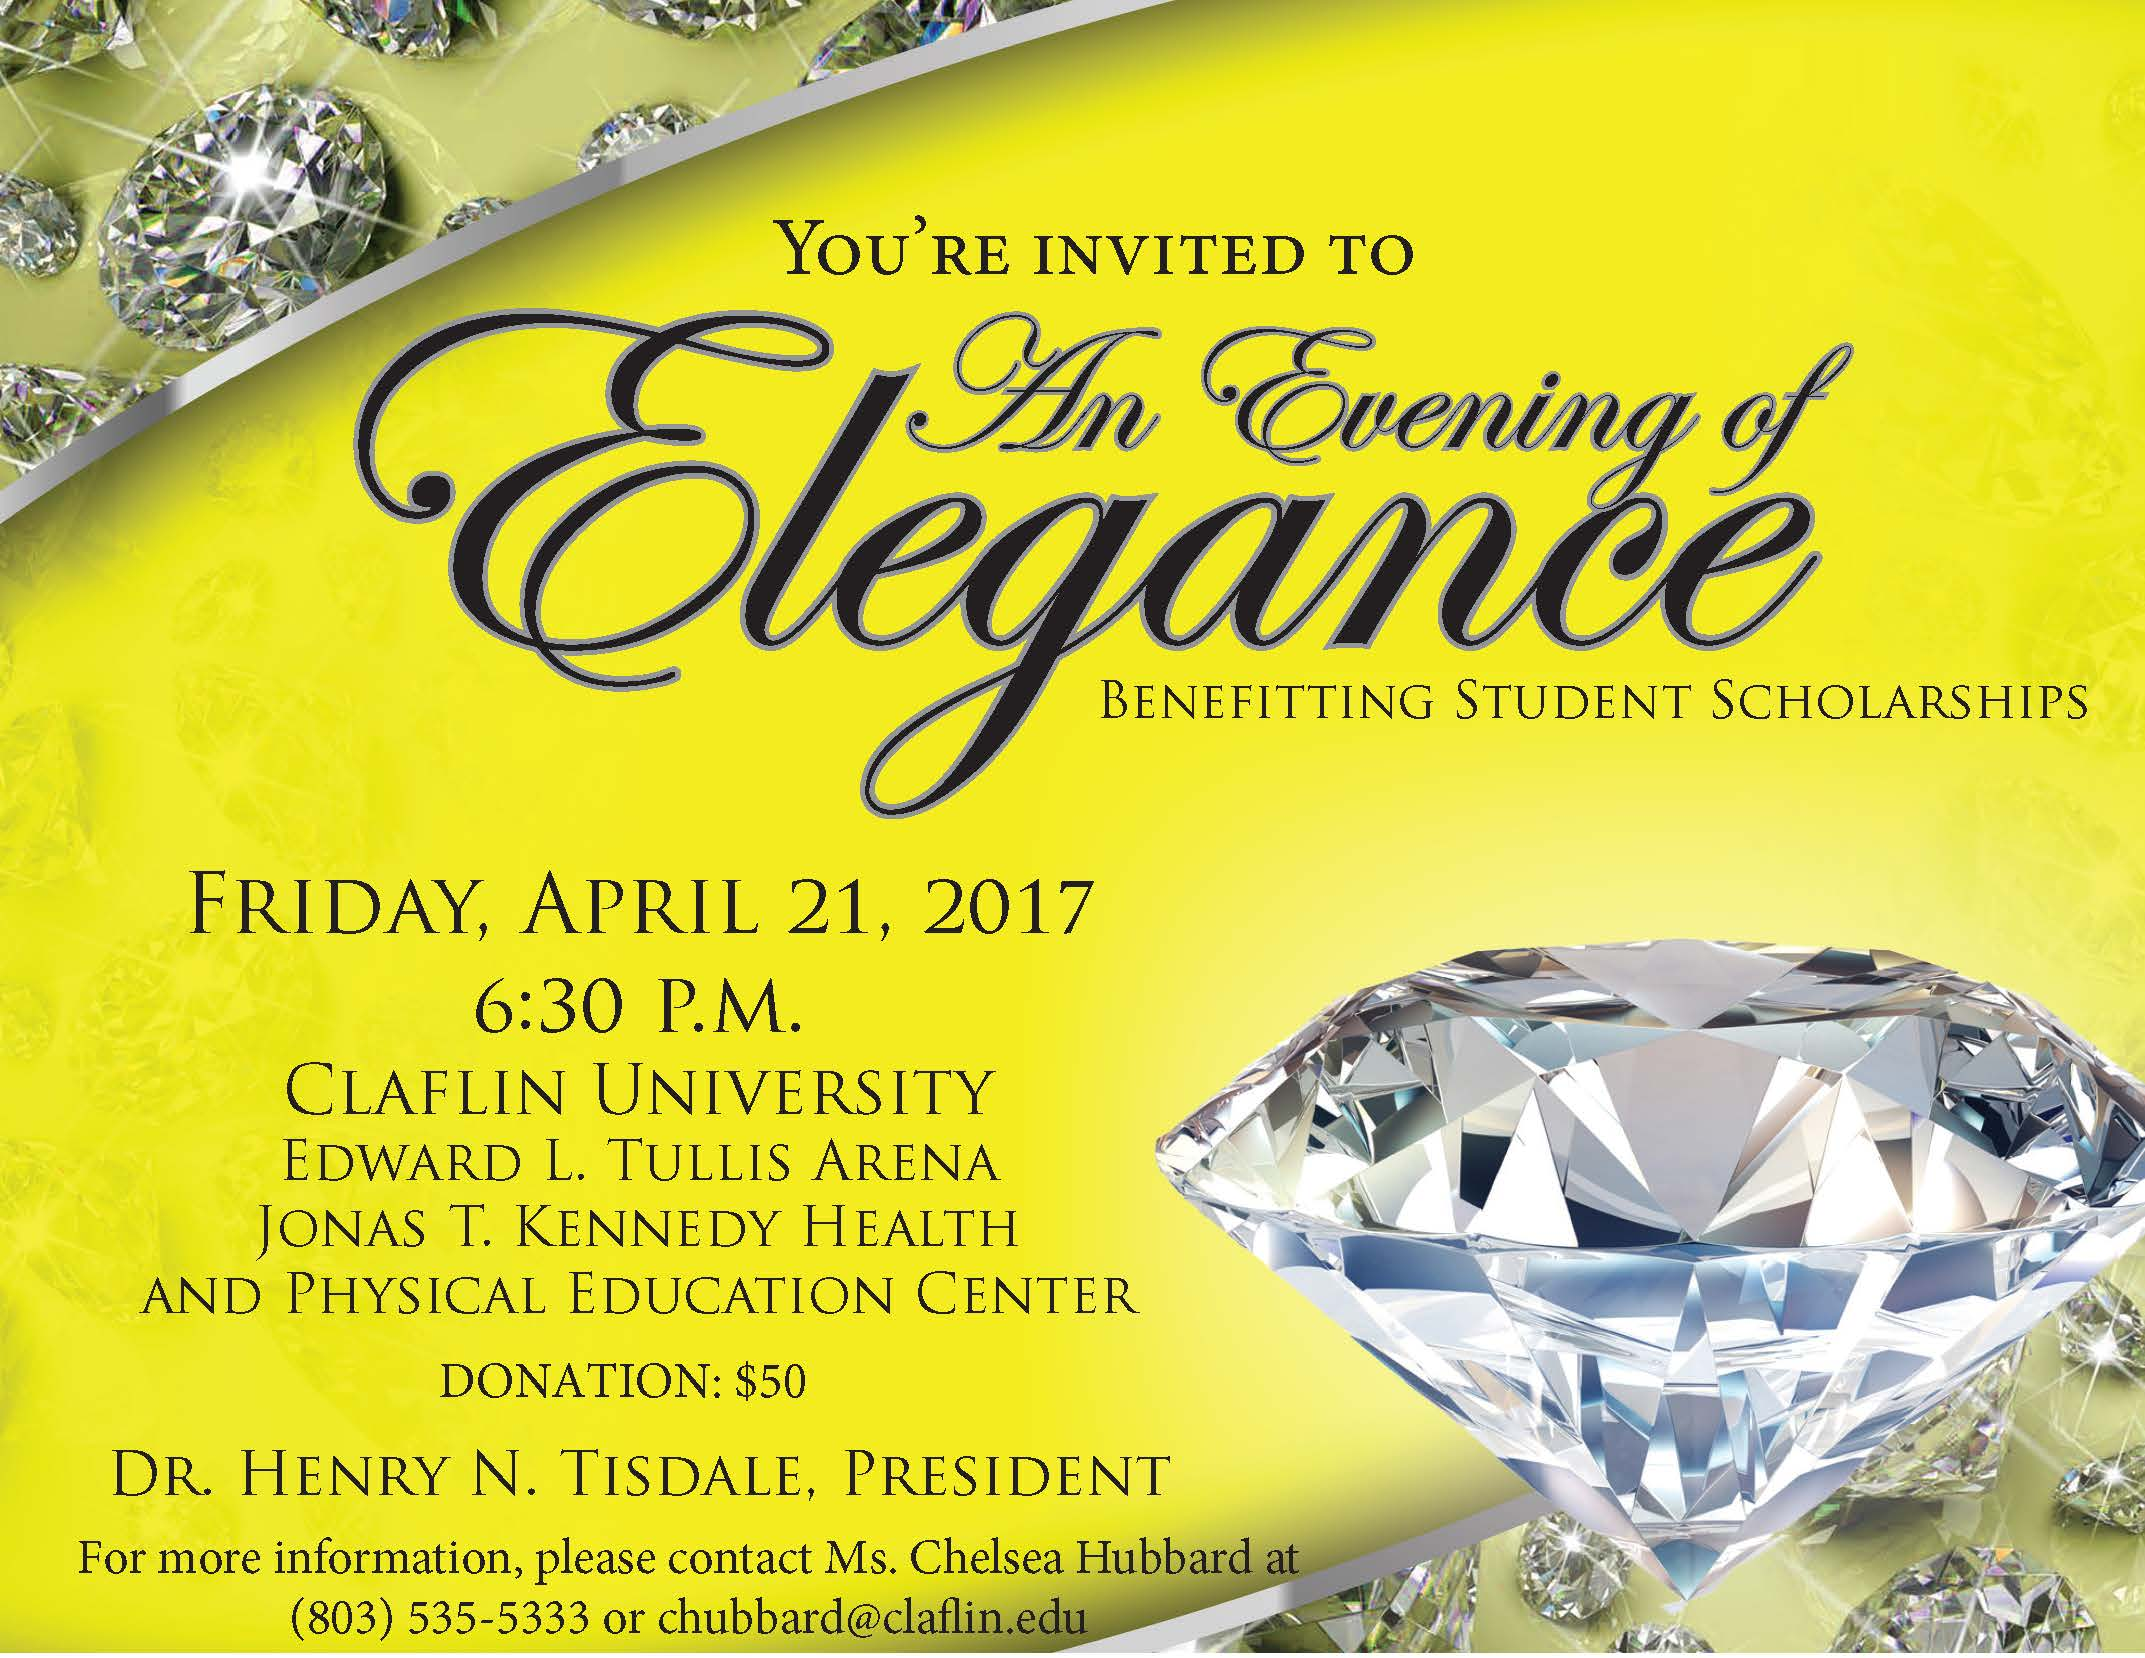 2017 Evening of Elegance Flyer (Revised 4.5.17)